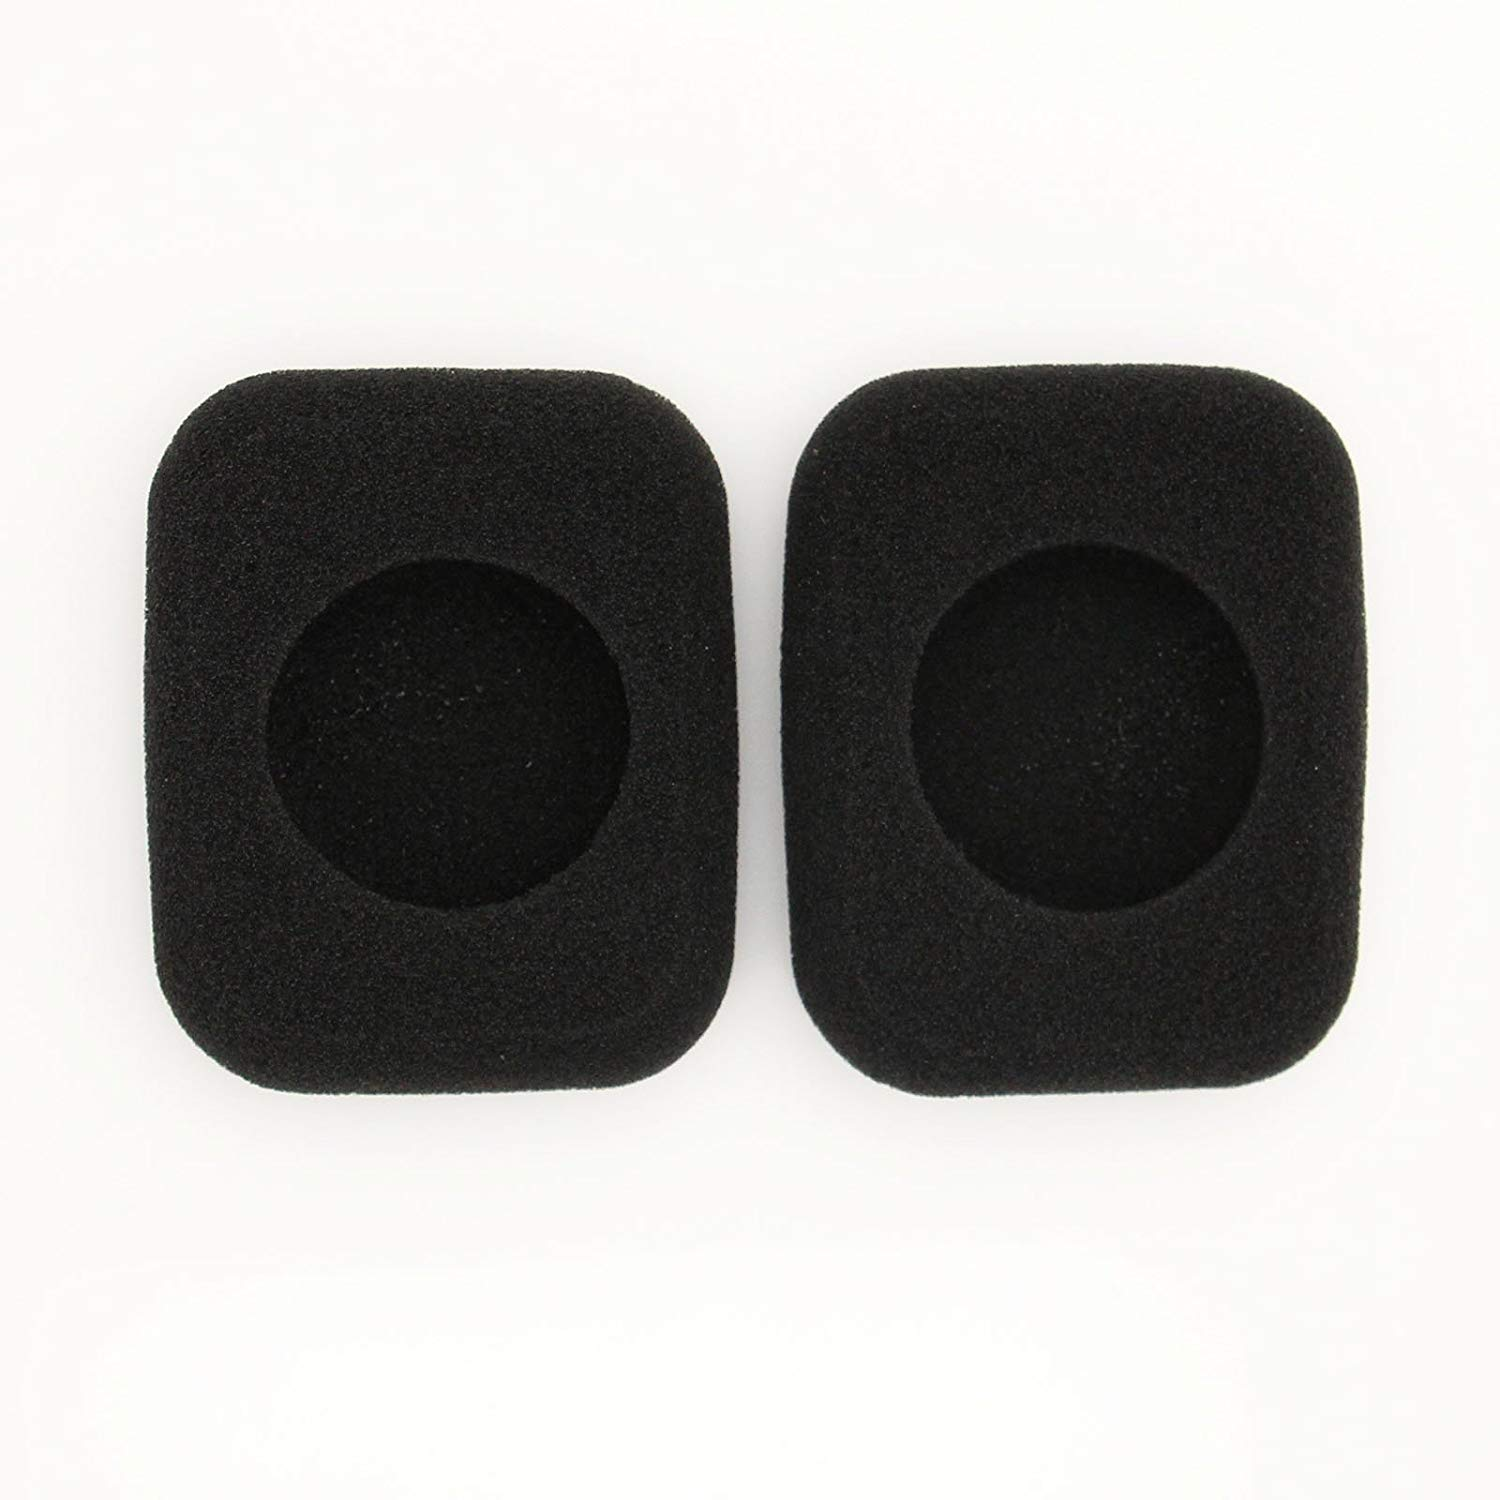 ShineCozy Premium Headphones Earpads Protein Leather Foam Ear Cushions,Headset Ear Pads Spare Replacement Parts (For Denmark B&O Bang&Olufsen FORM 2i J-54)